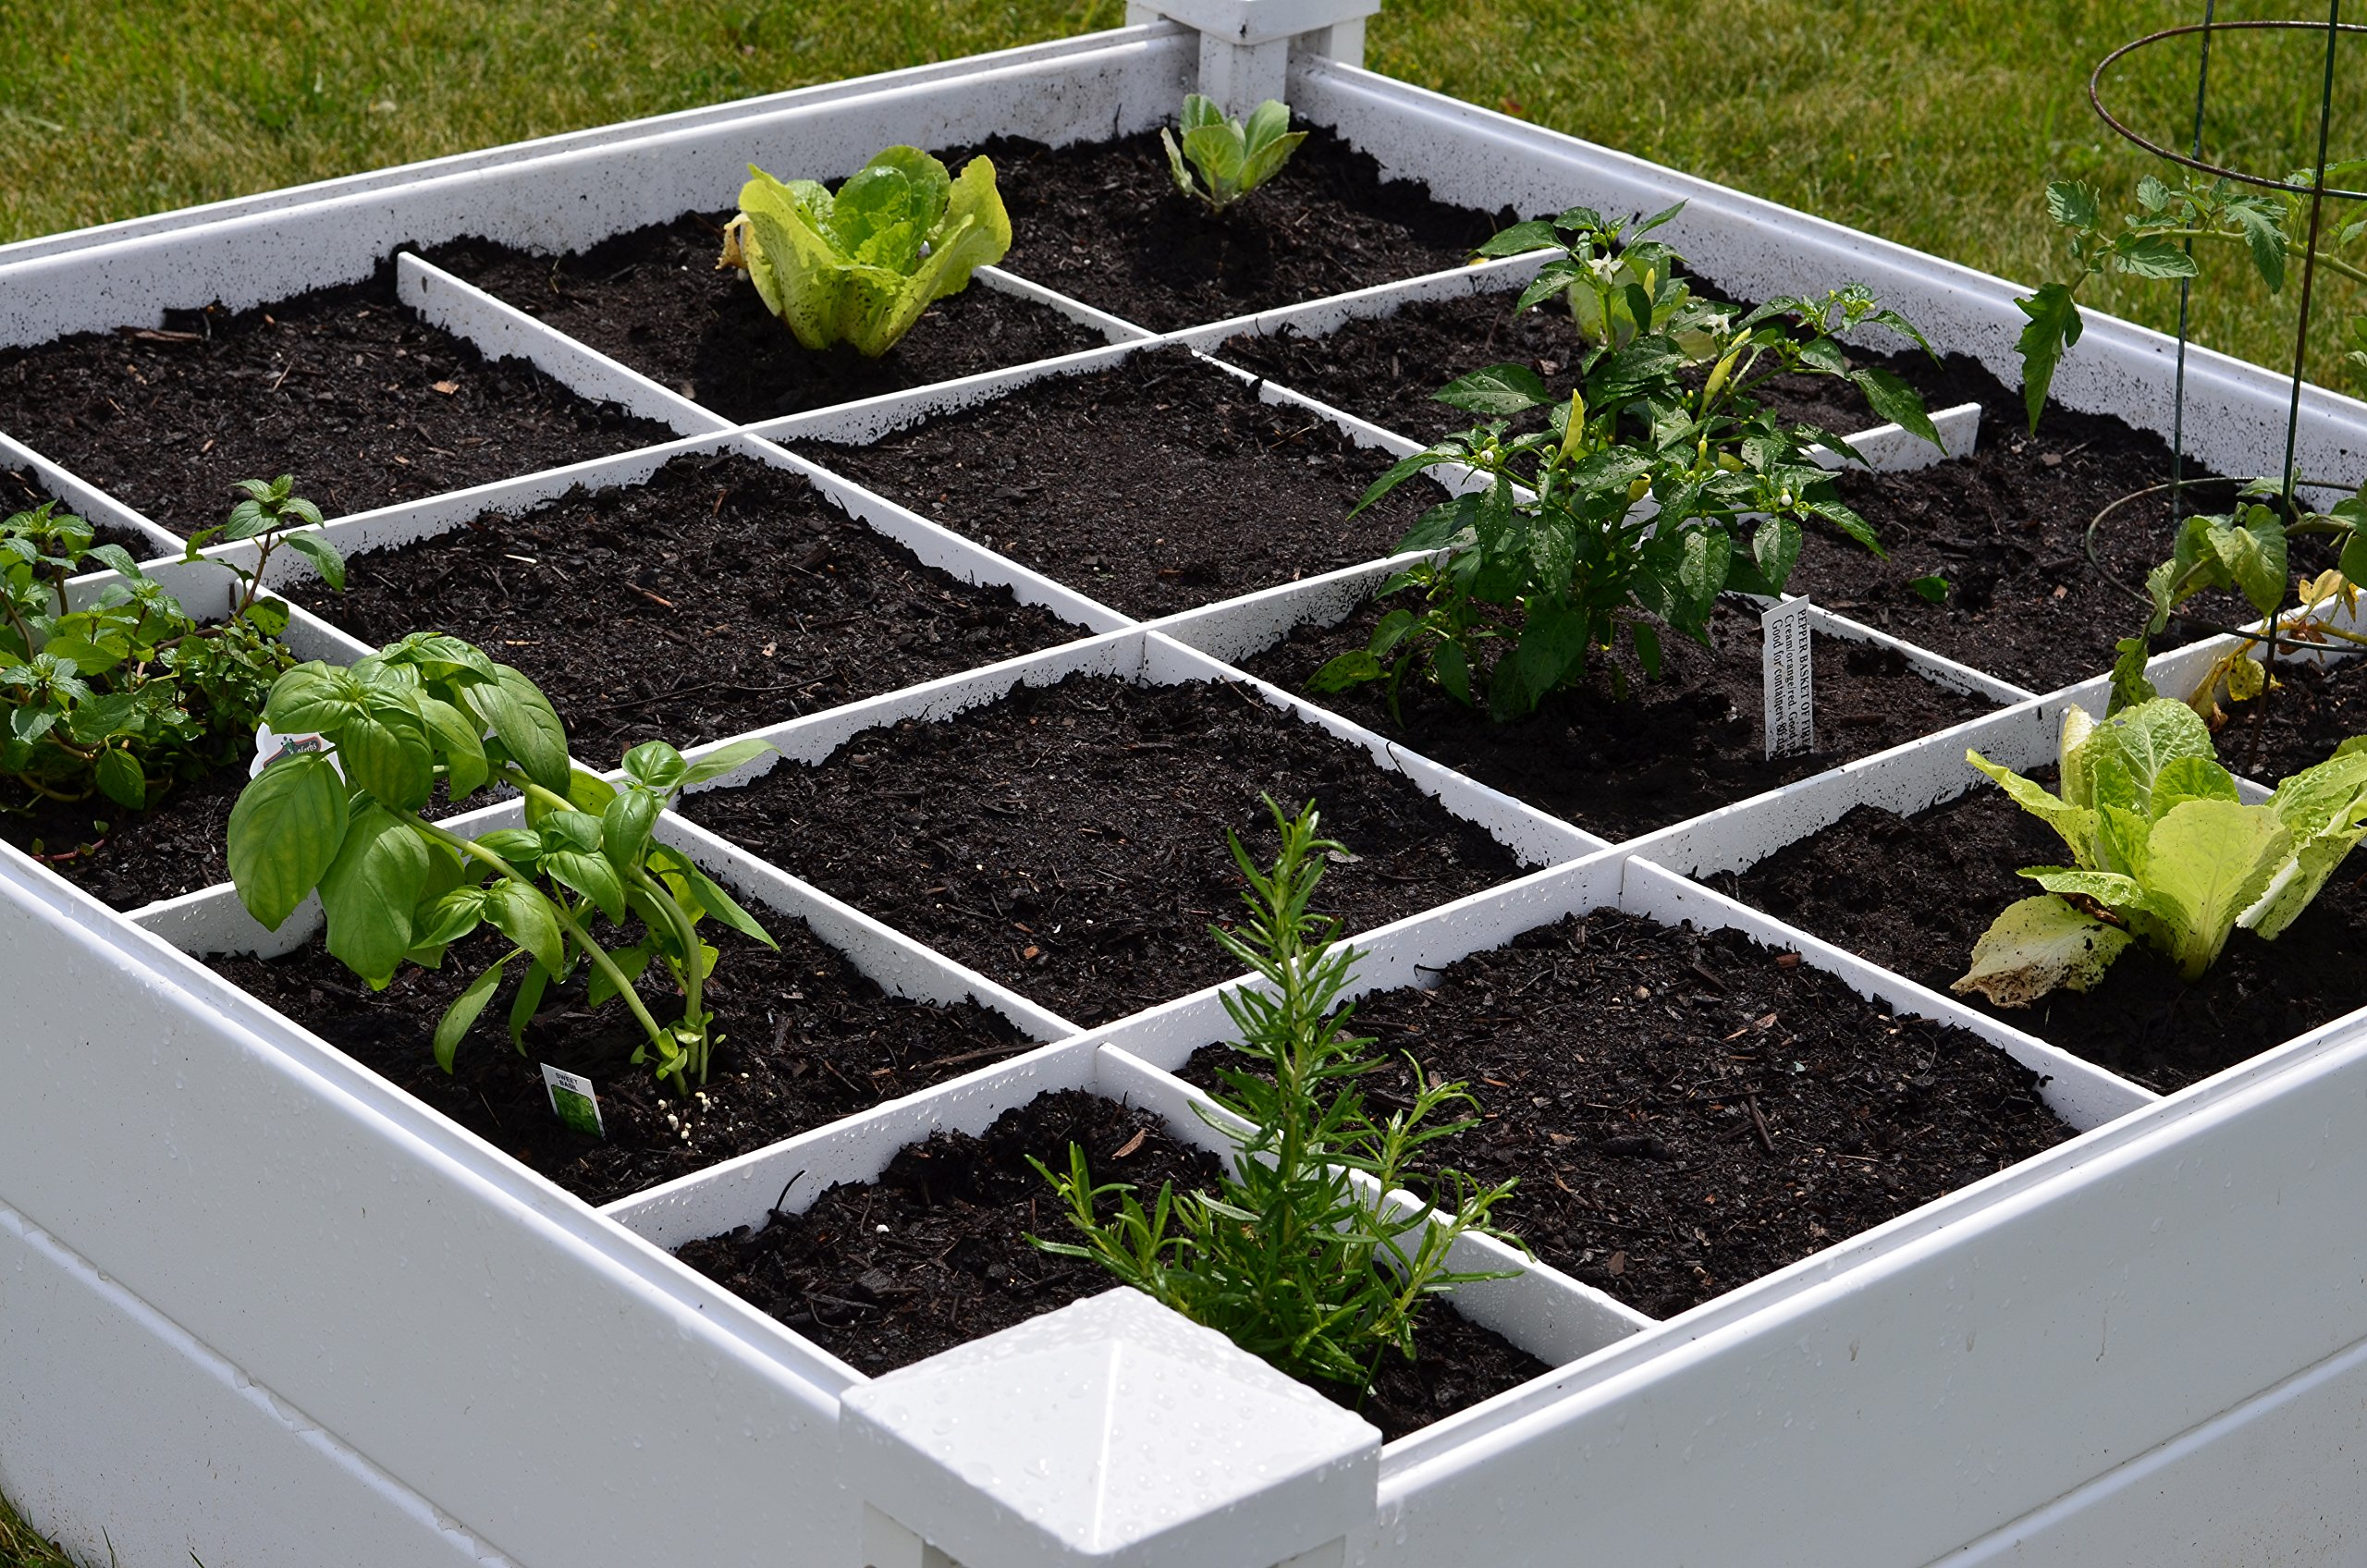 """Vita Gardens VT17104 Vita Bed with GRO 48in x 7.5in Garden with Grid, 7.38"""" H, White 2 Available in classic white Can combine more than one unit Grid system increases yield because plants can be planted closer together"""